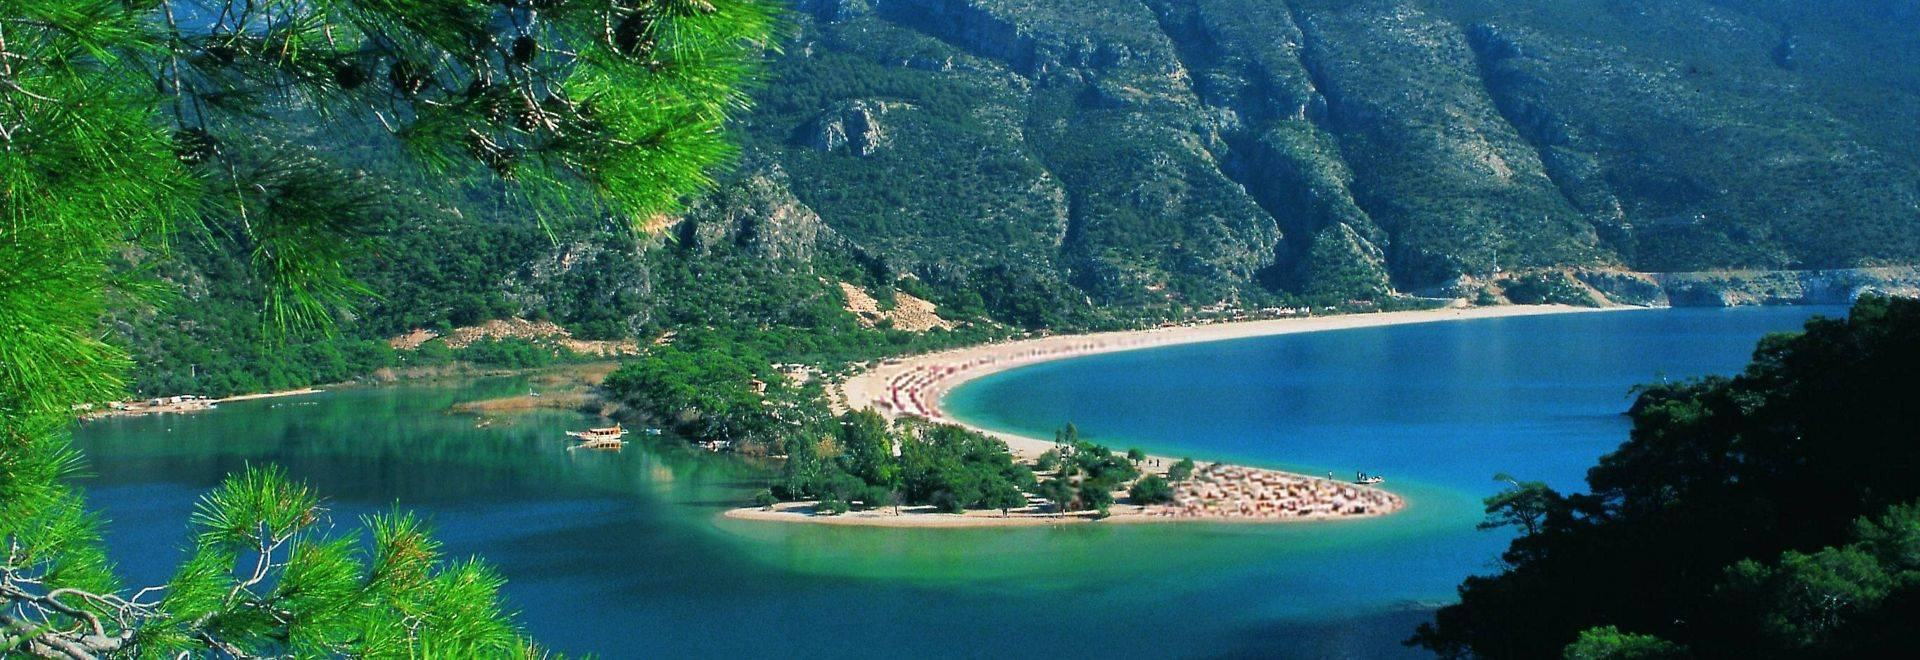 Oludeniz Beach And Lagoon And Paragliders